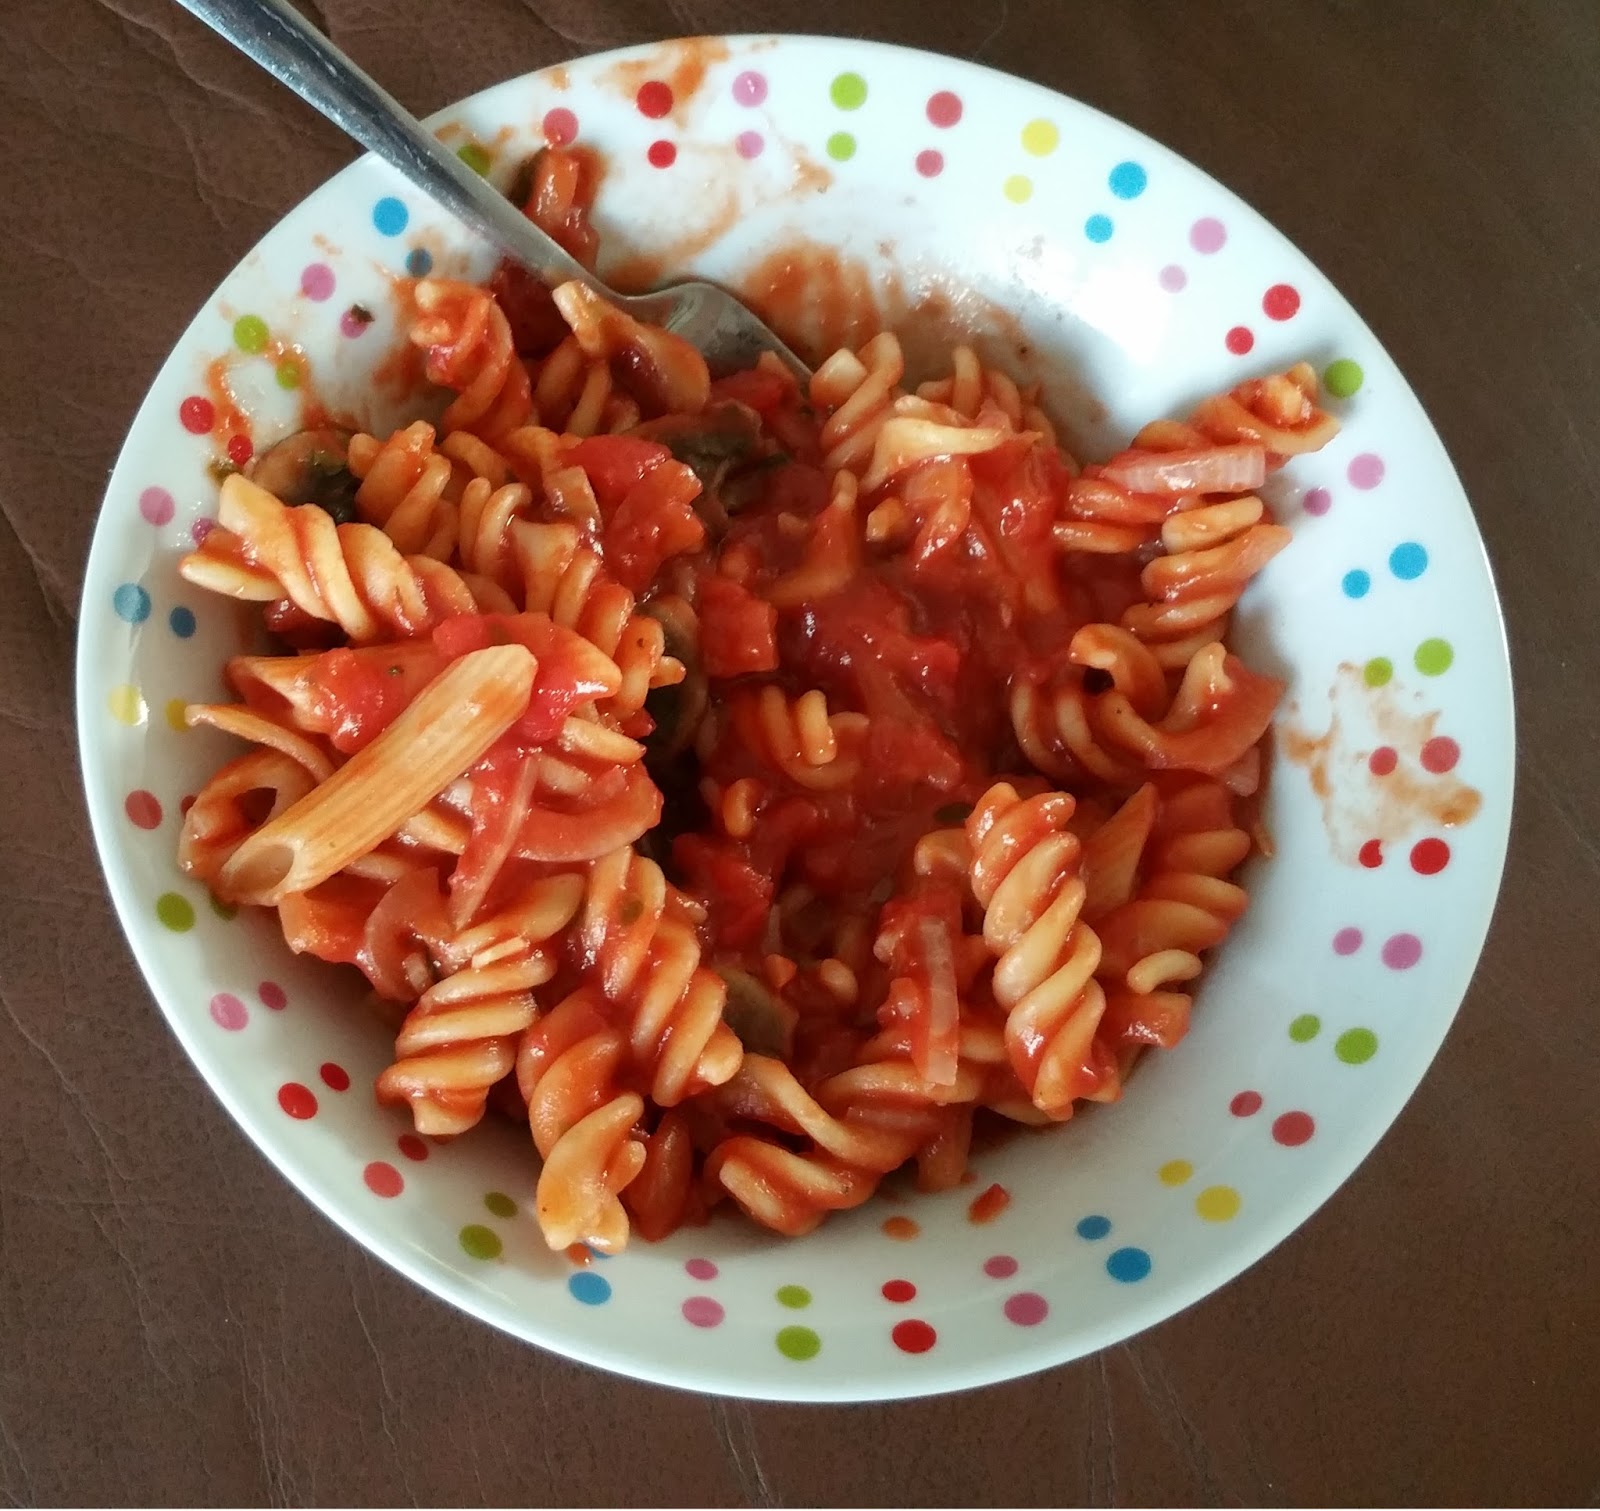 Cucina Pasta Sauce Syns Syn Free Tomato Sauce Just A Crafty Mama